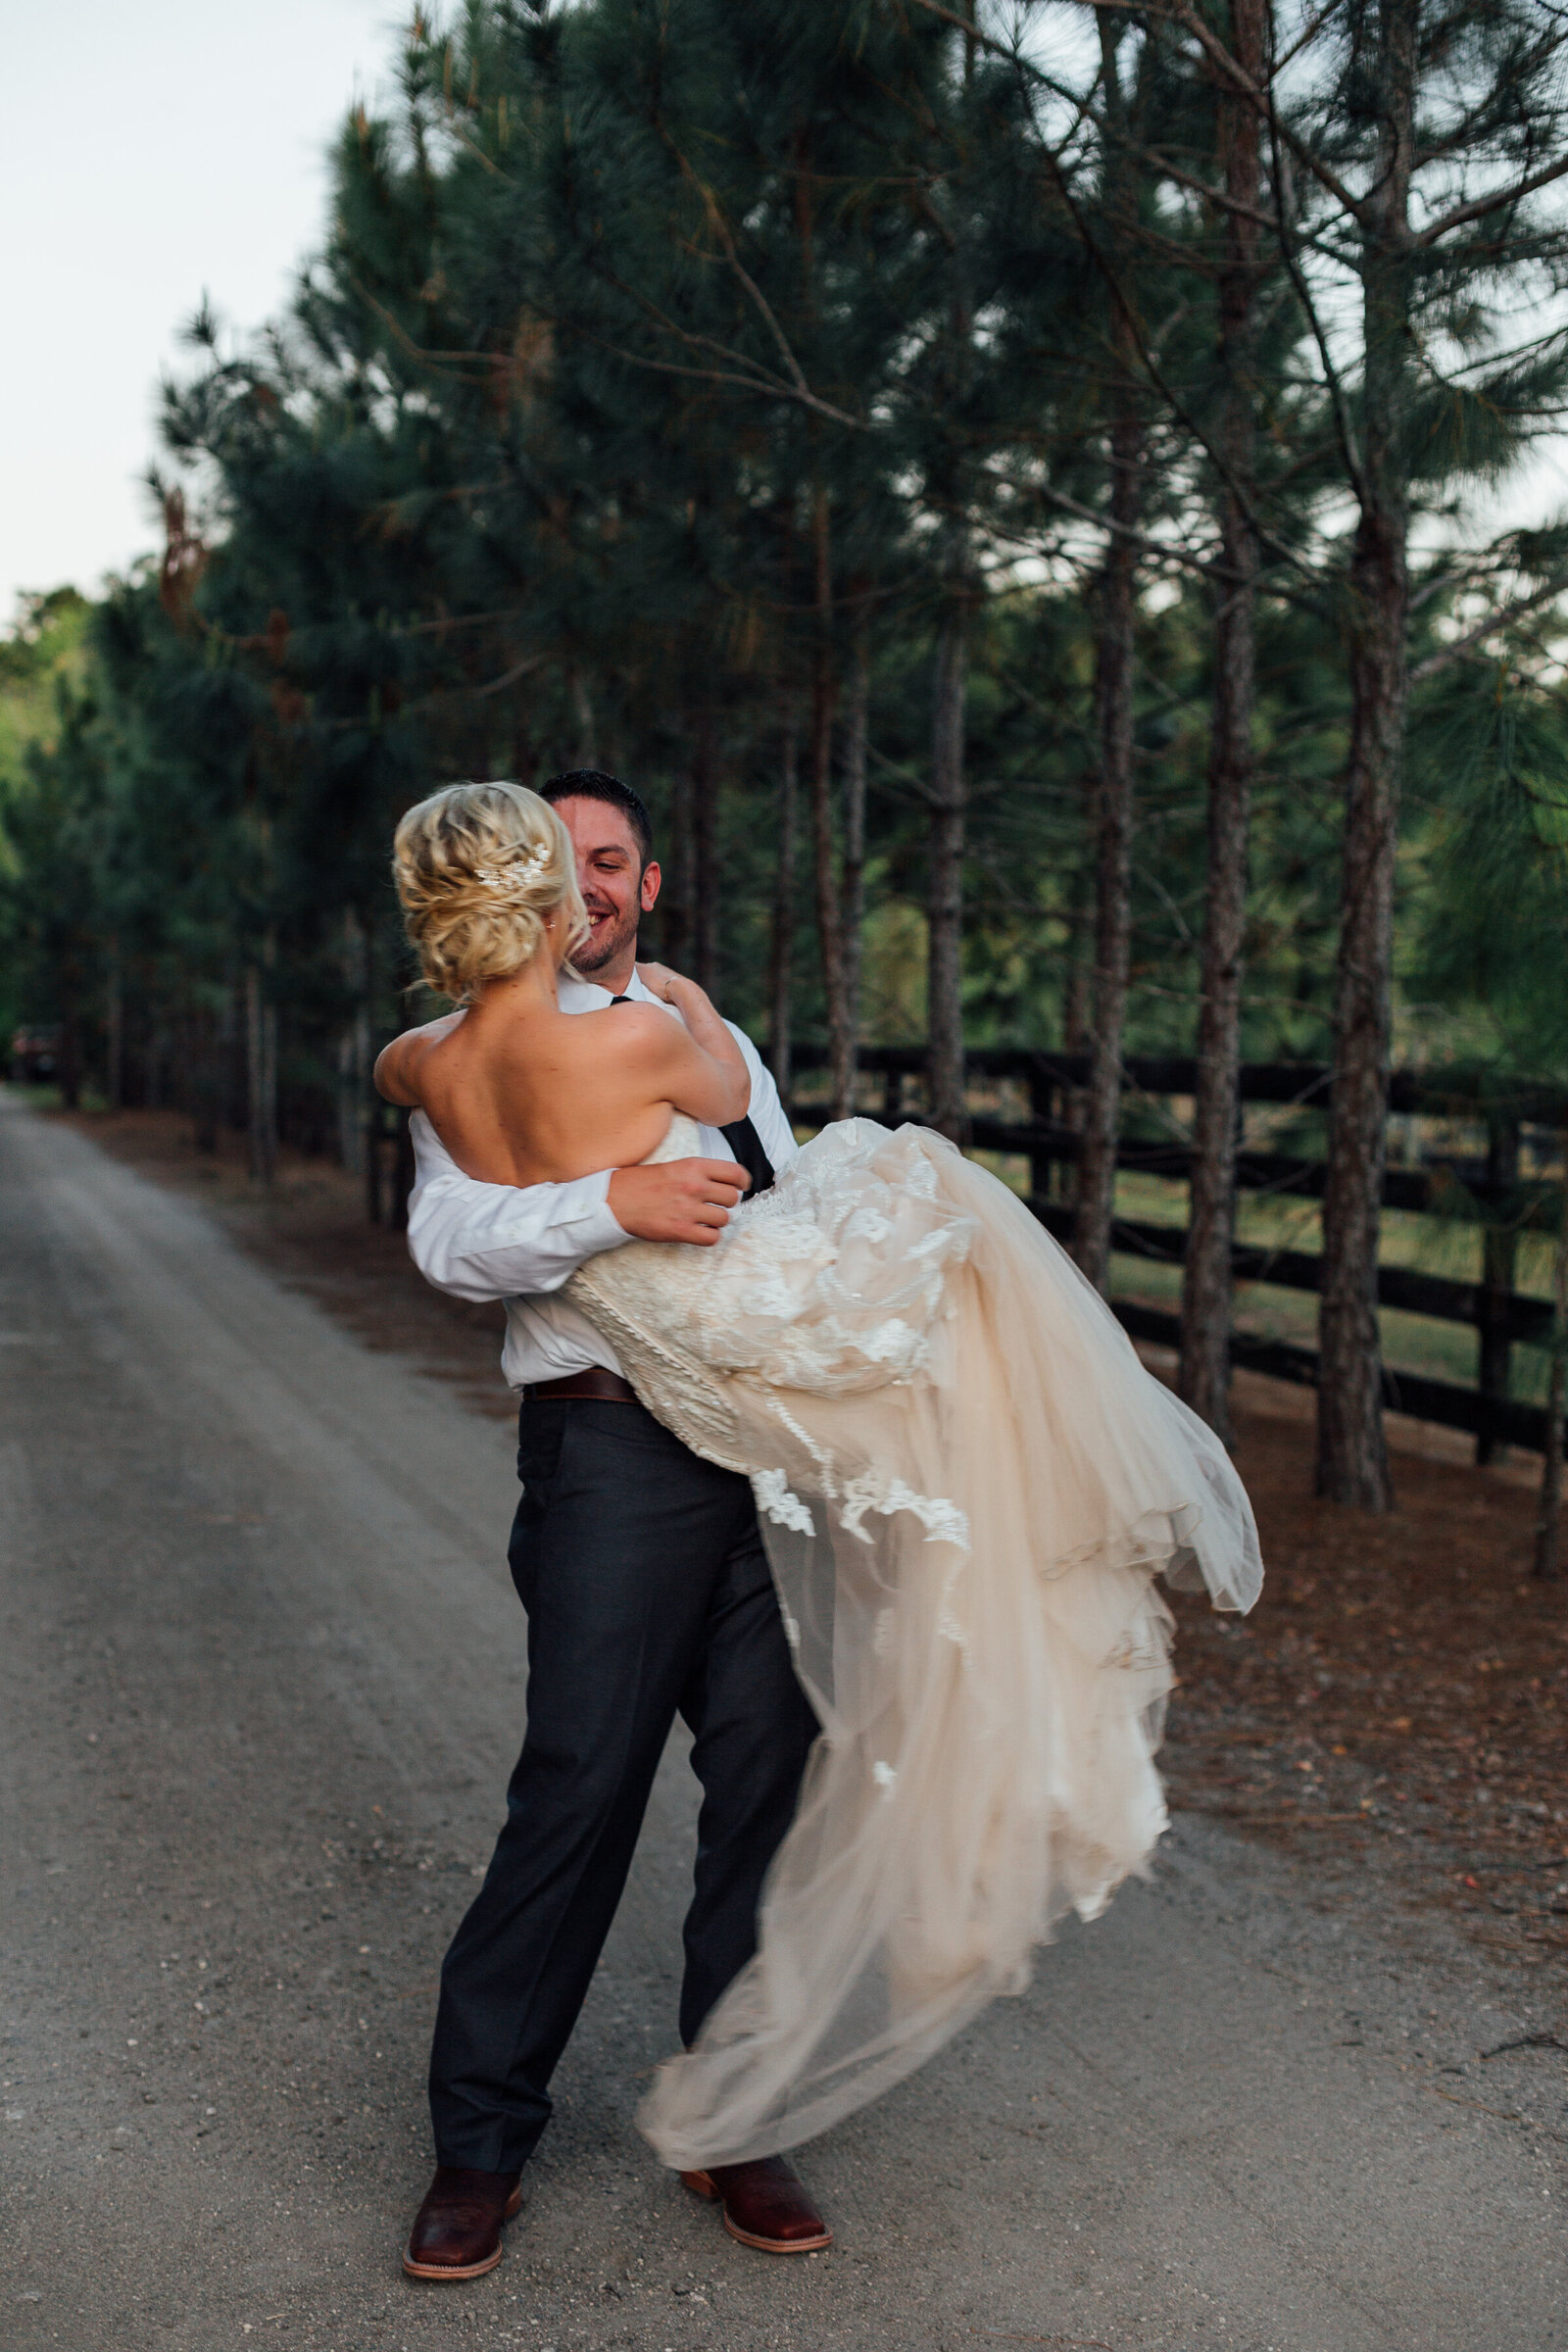 groom-holding-bride-on-country-road-photo-iris-and-urchin-ryley